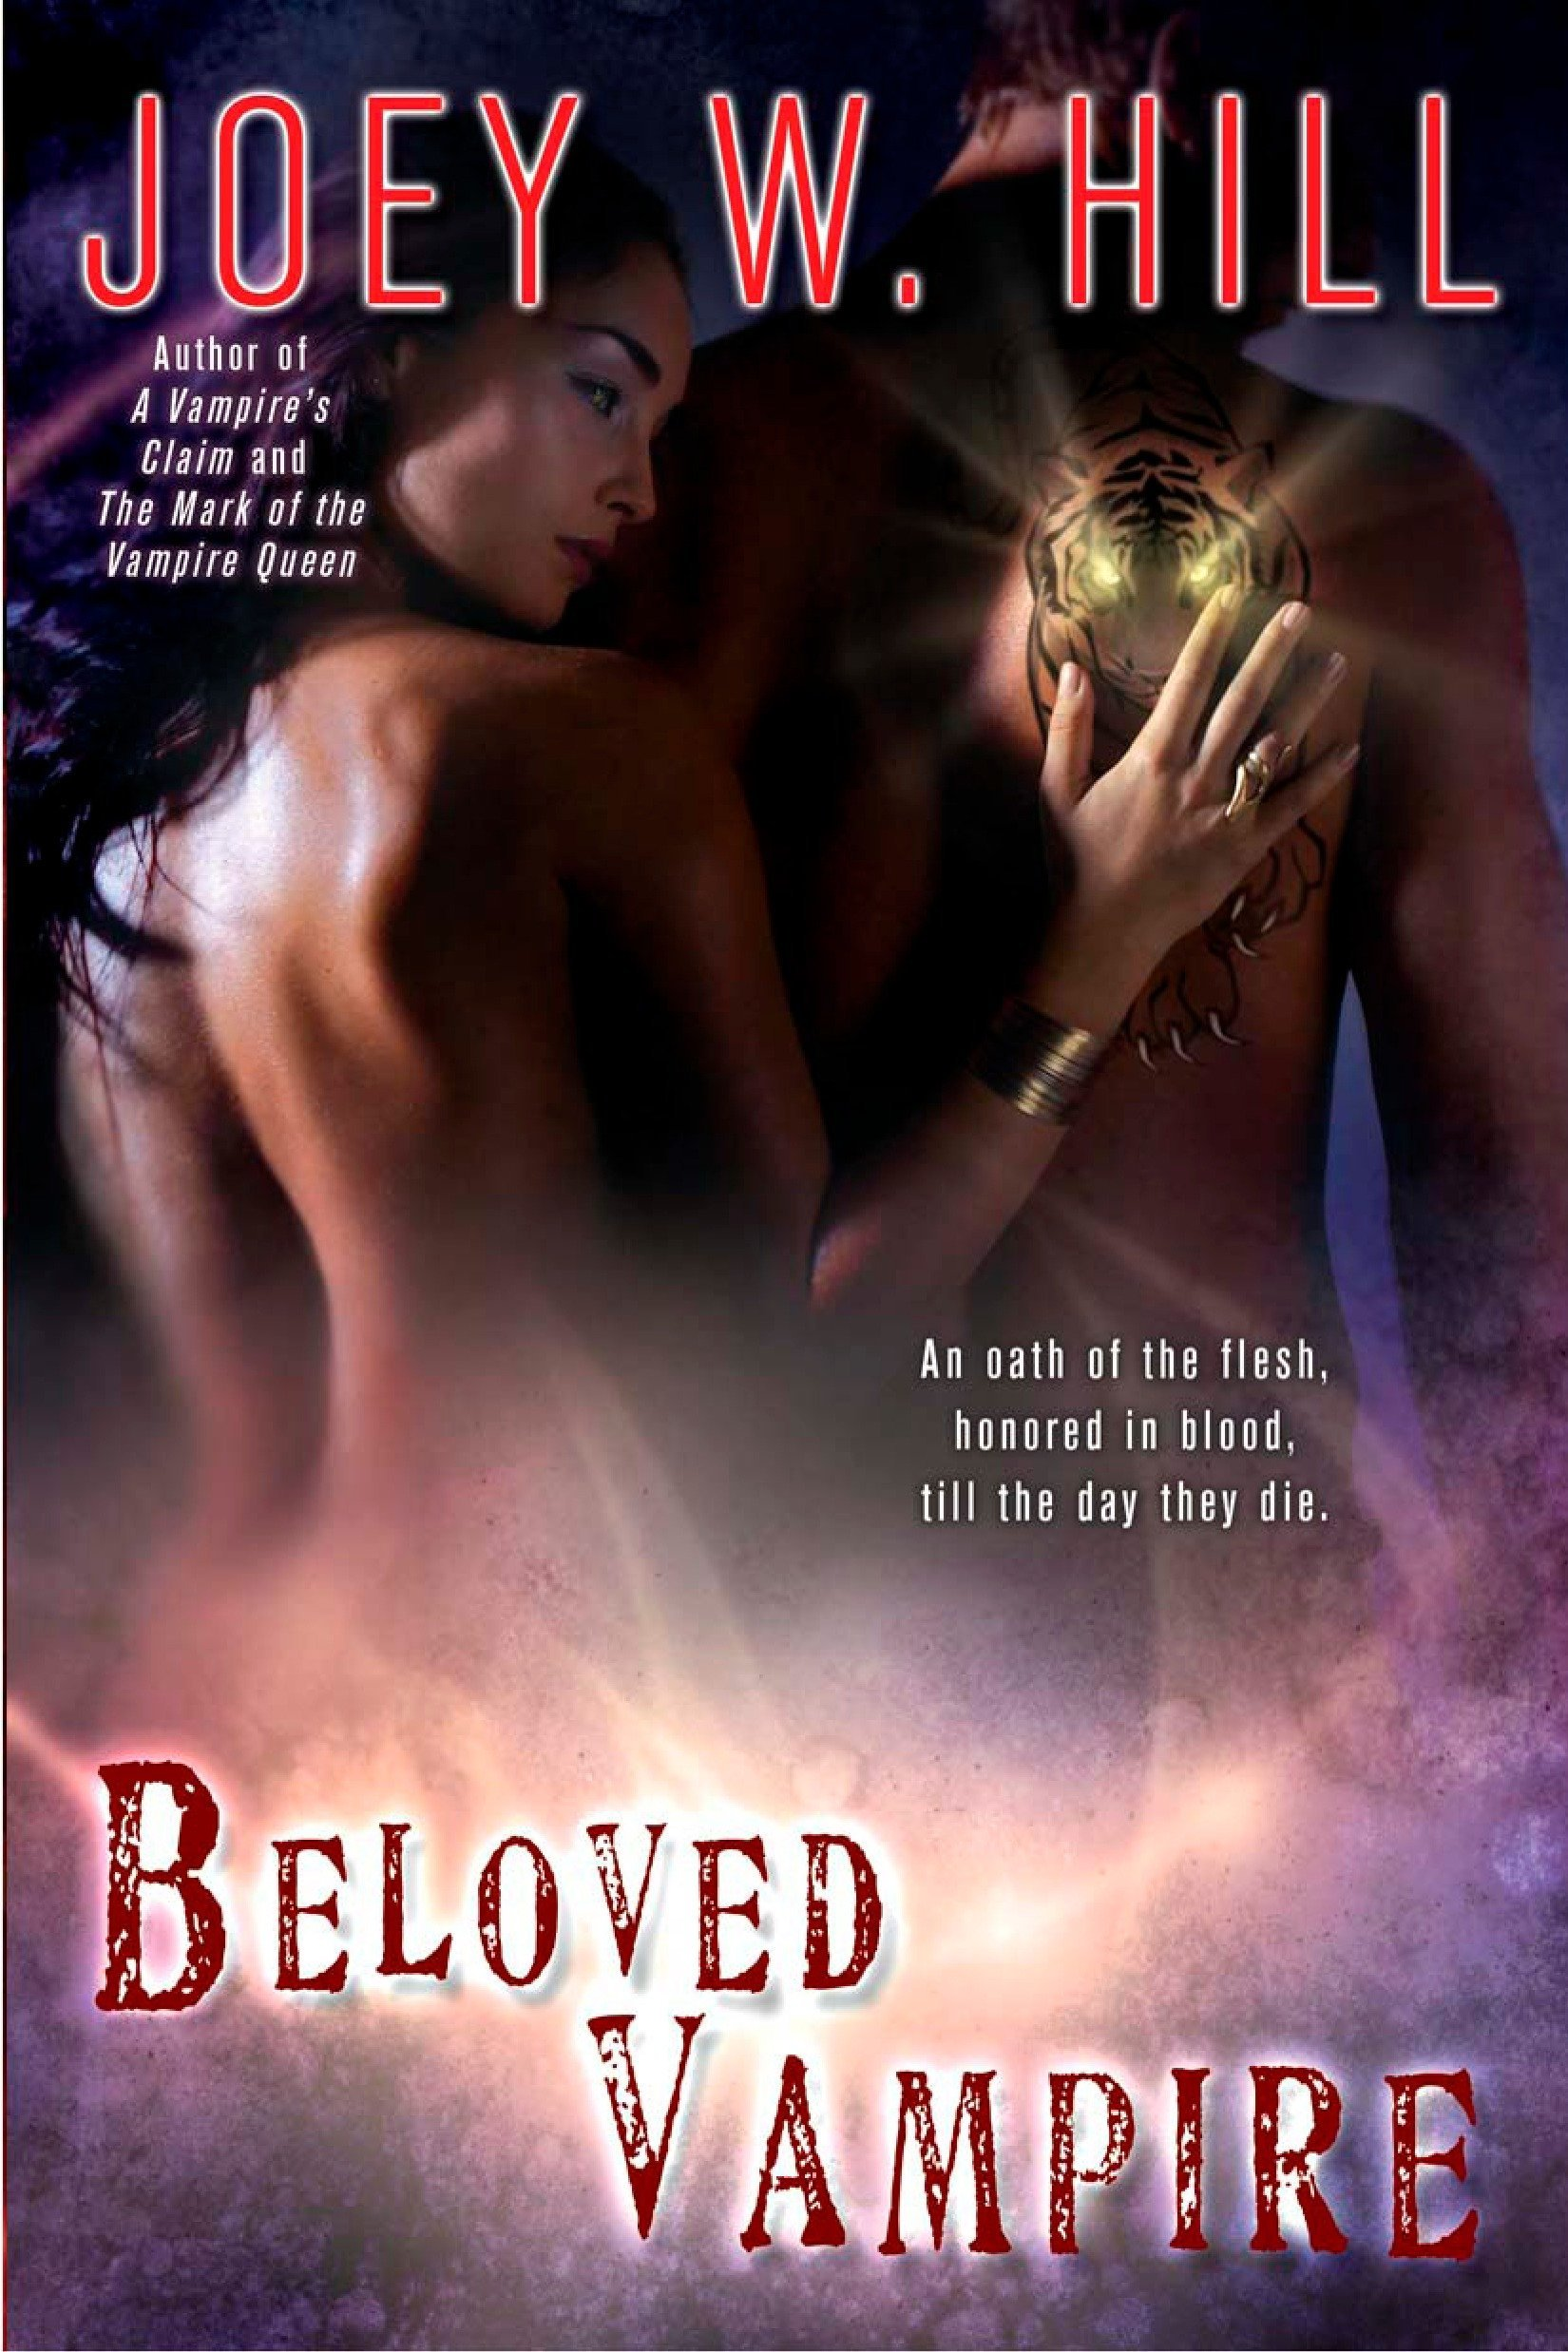 Amazon.com: Beloved Vampire (A Vampire Queen Novel) (9780425227954): Joey W.  Hill: Books